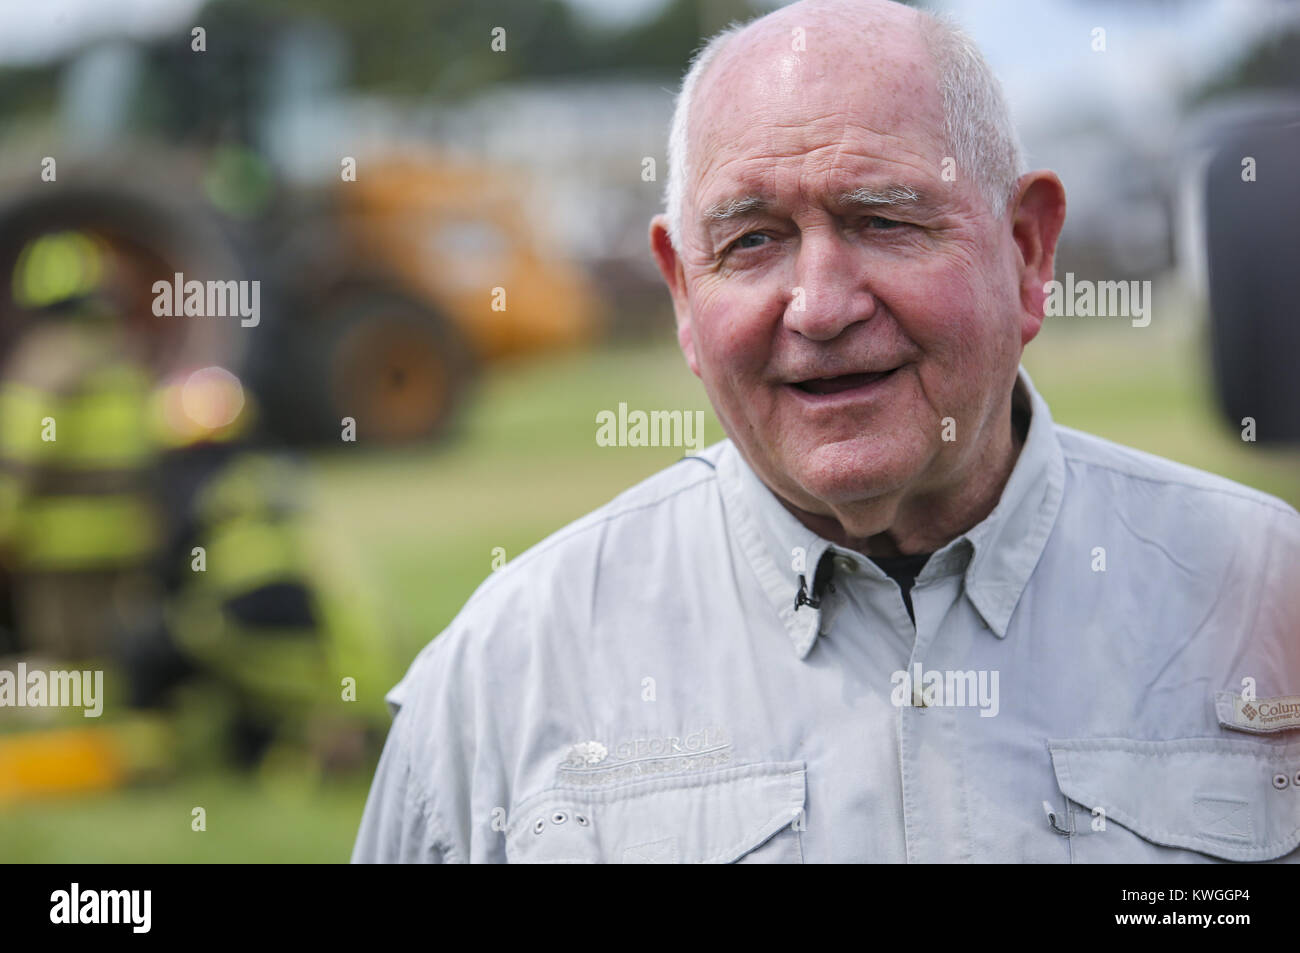 Davenport, Iowa, USA. 6th Aug, 2017. U.S. Secretary of Agriculture Sonny Perdue talks to members of the media during - Stock Image